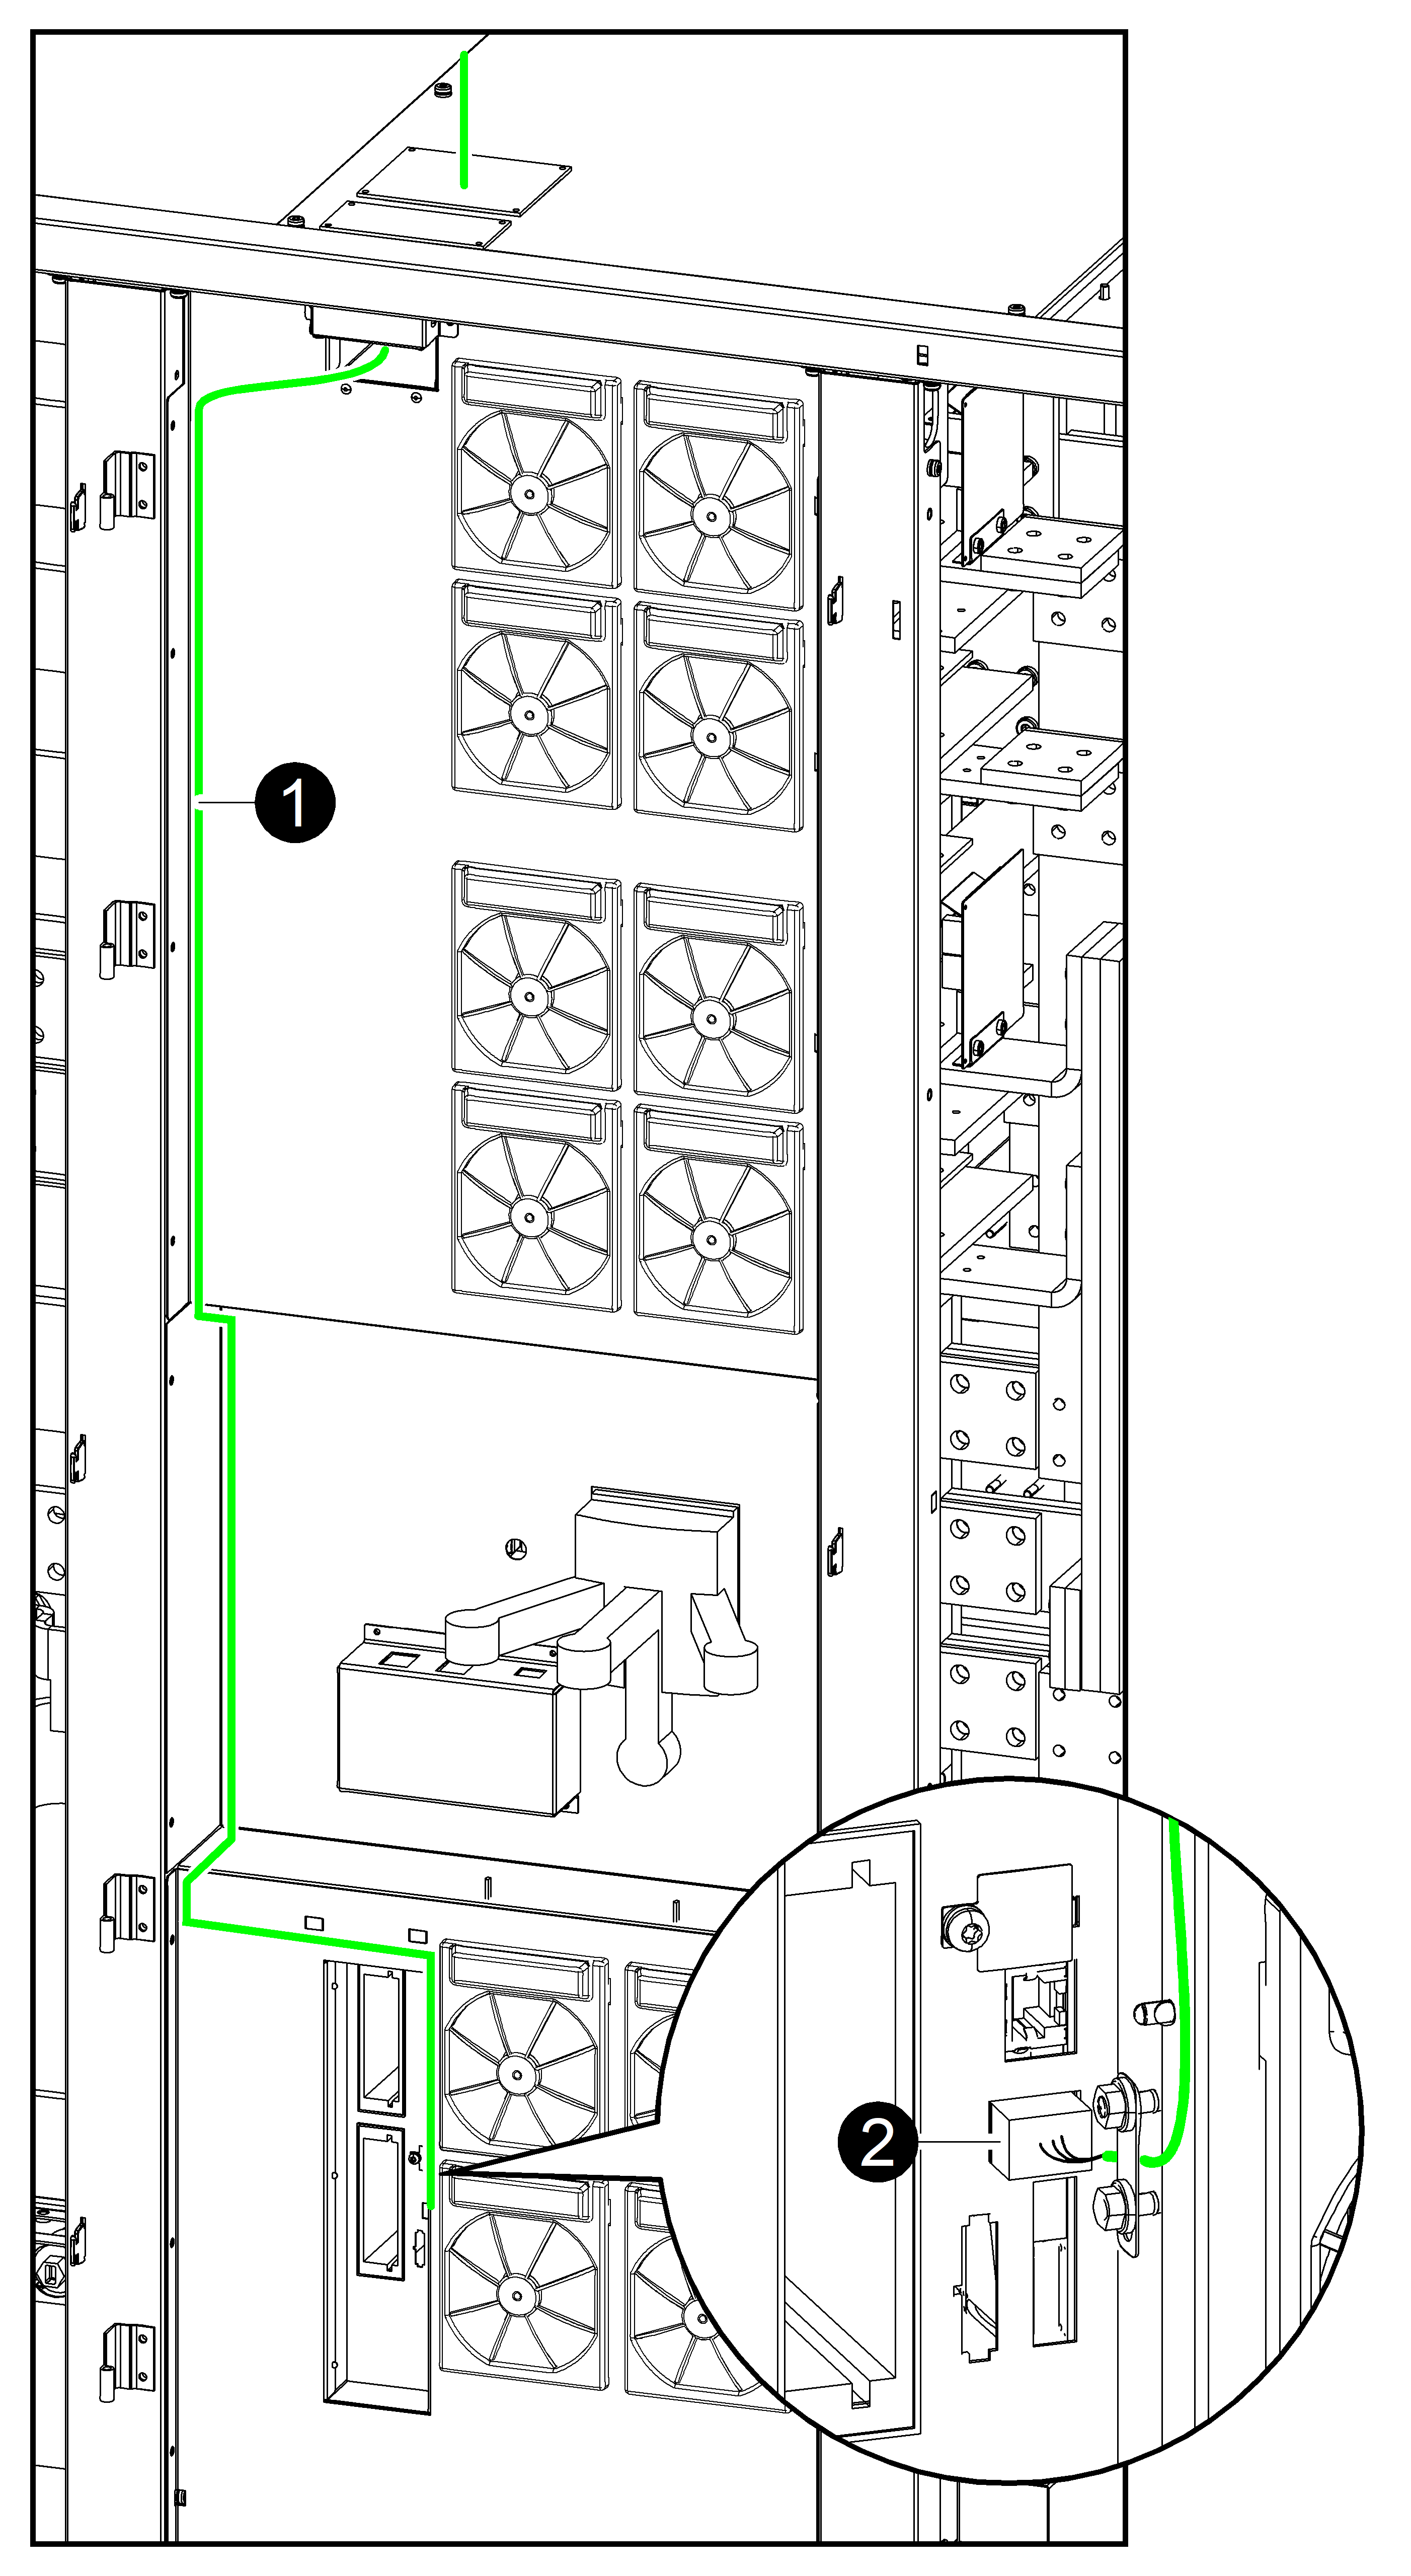 Connect The Modbus Cables Galaxy Vx Technical Manuals 480 V Wiring Connection Diagram Front View Of I O Cabinet In Top Cable Entry Systems